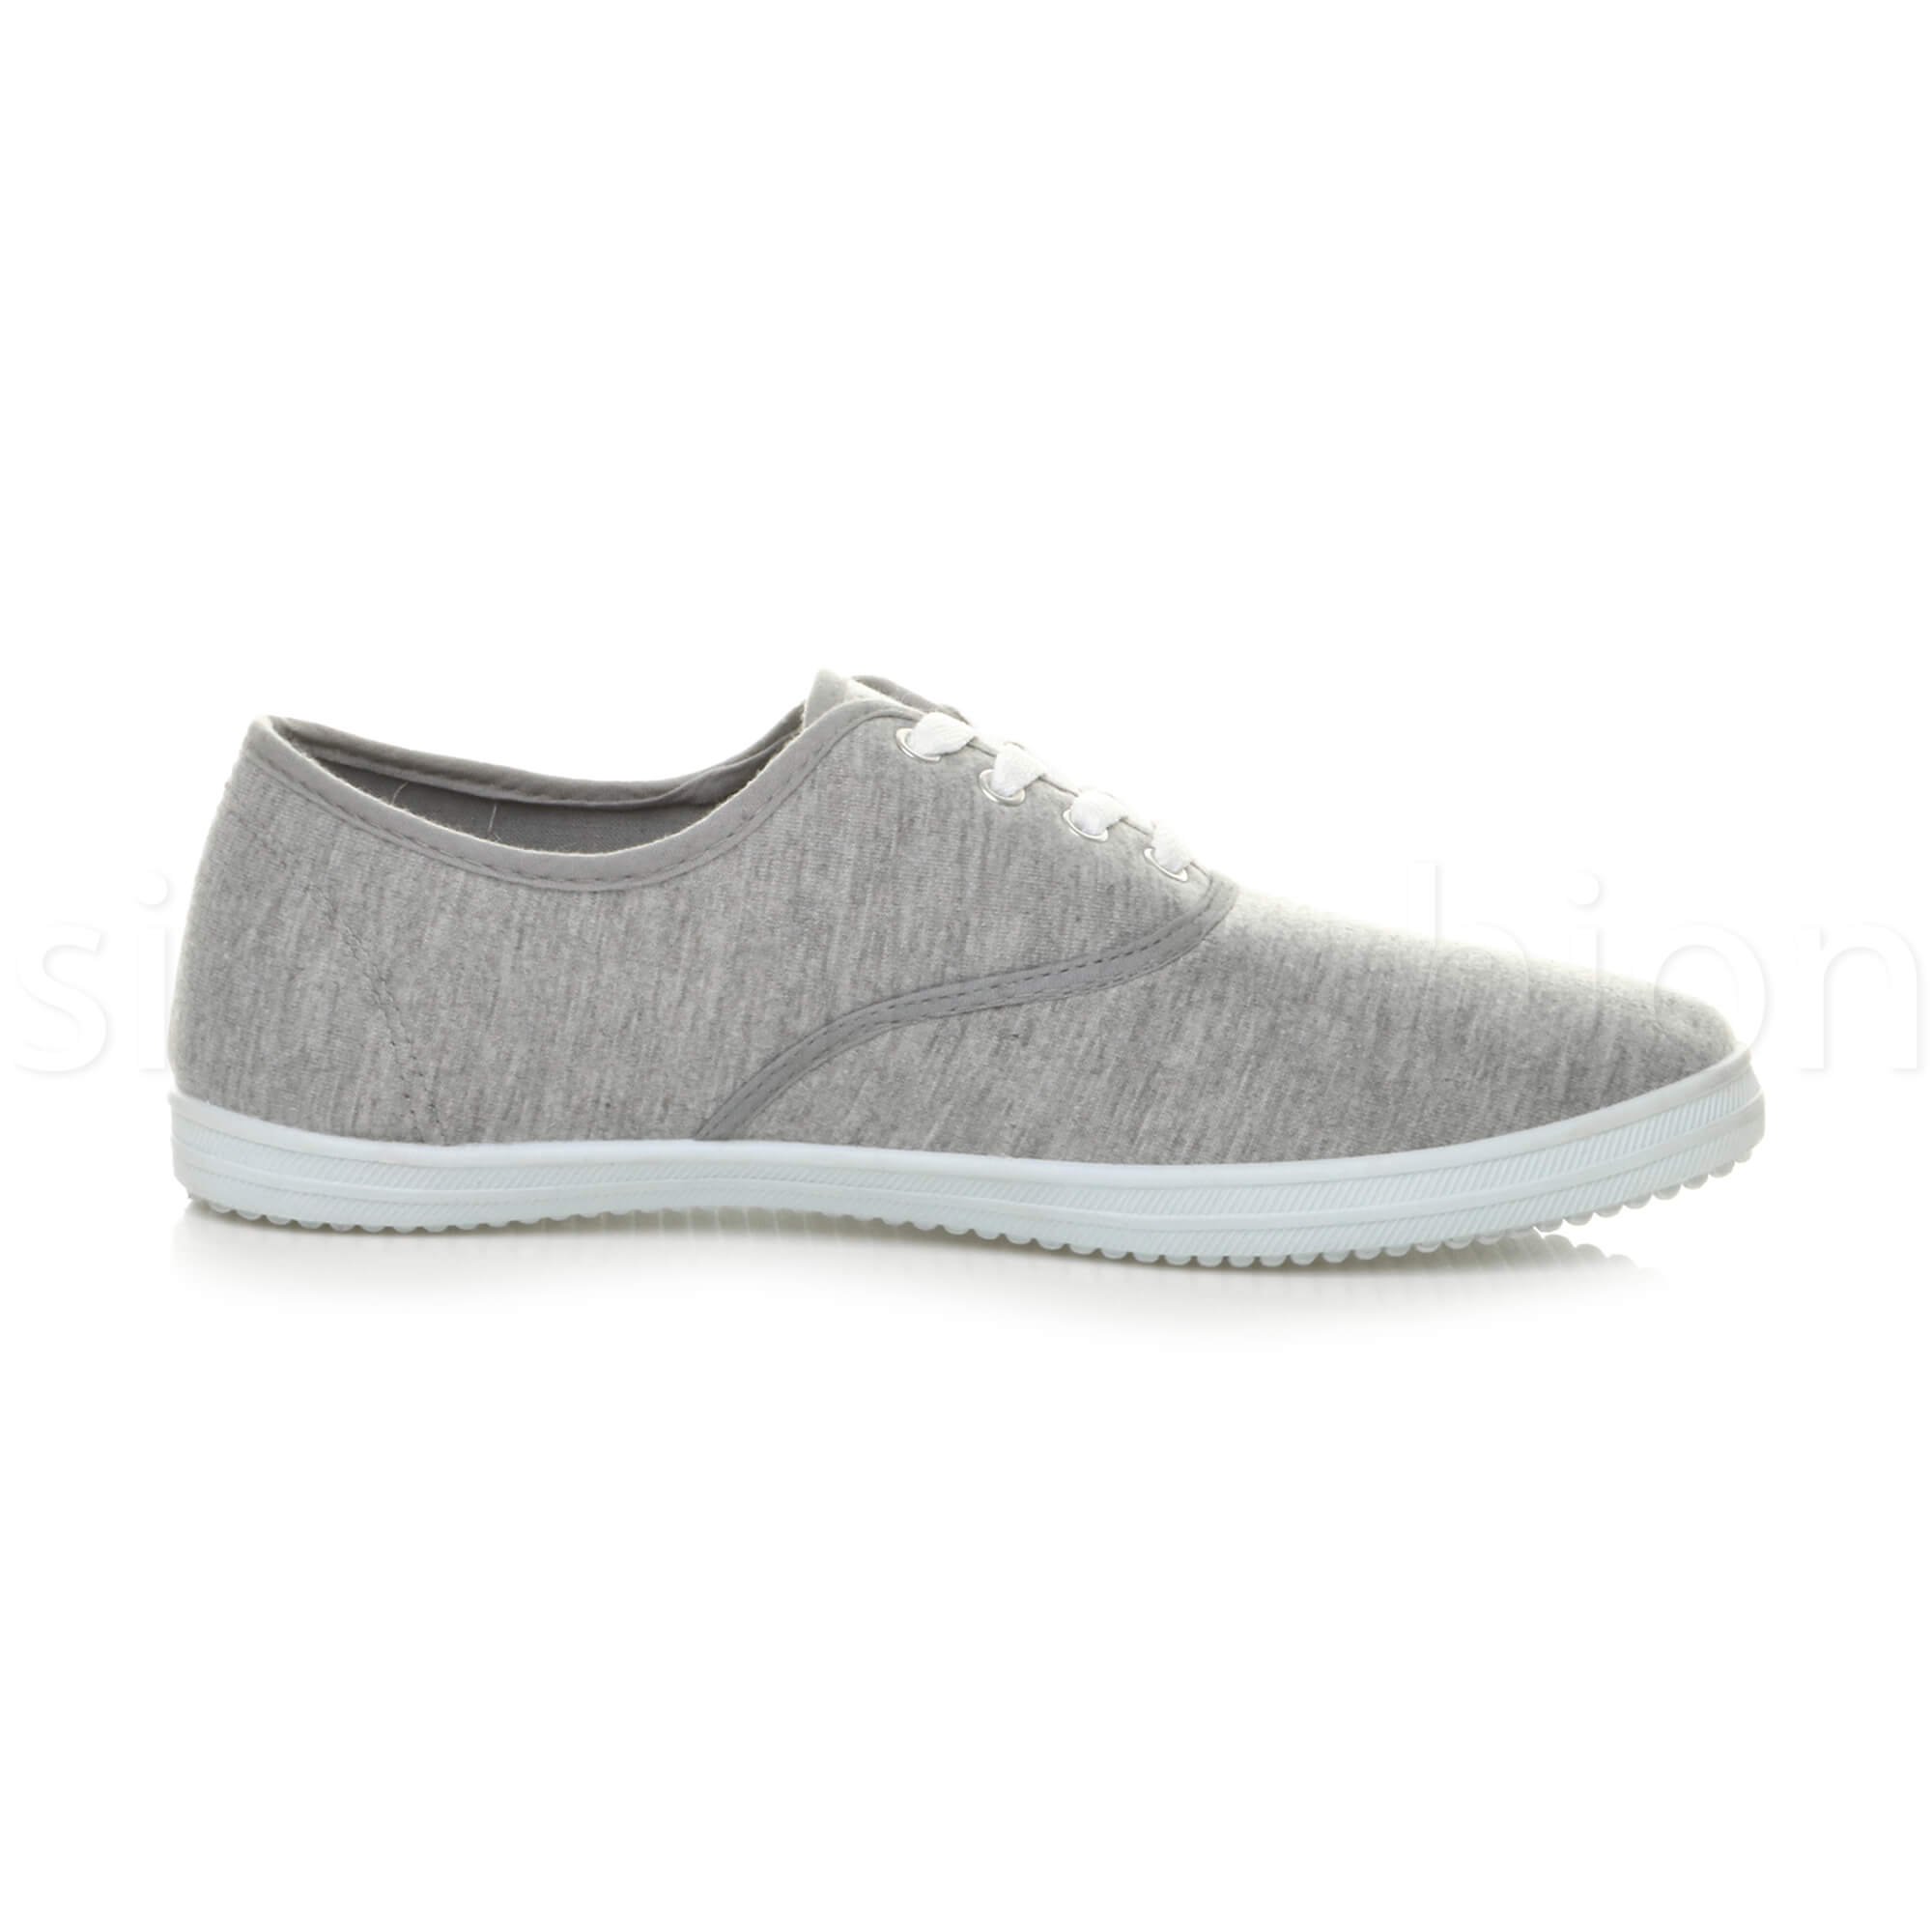 Mens-canvas-trainers-plimsoles-plimsolls-shoes-lace-up-pumps-size thumbnail 18